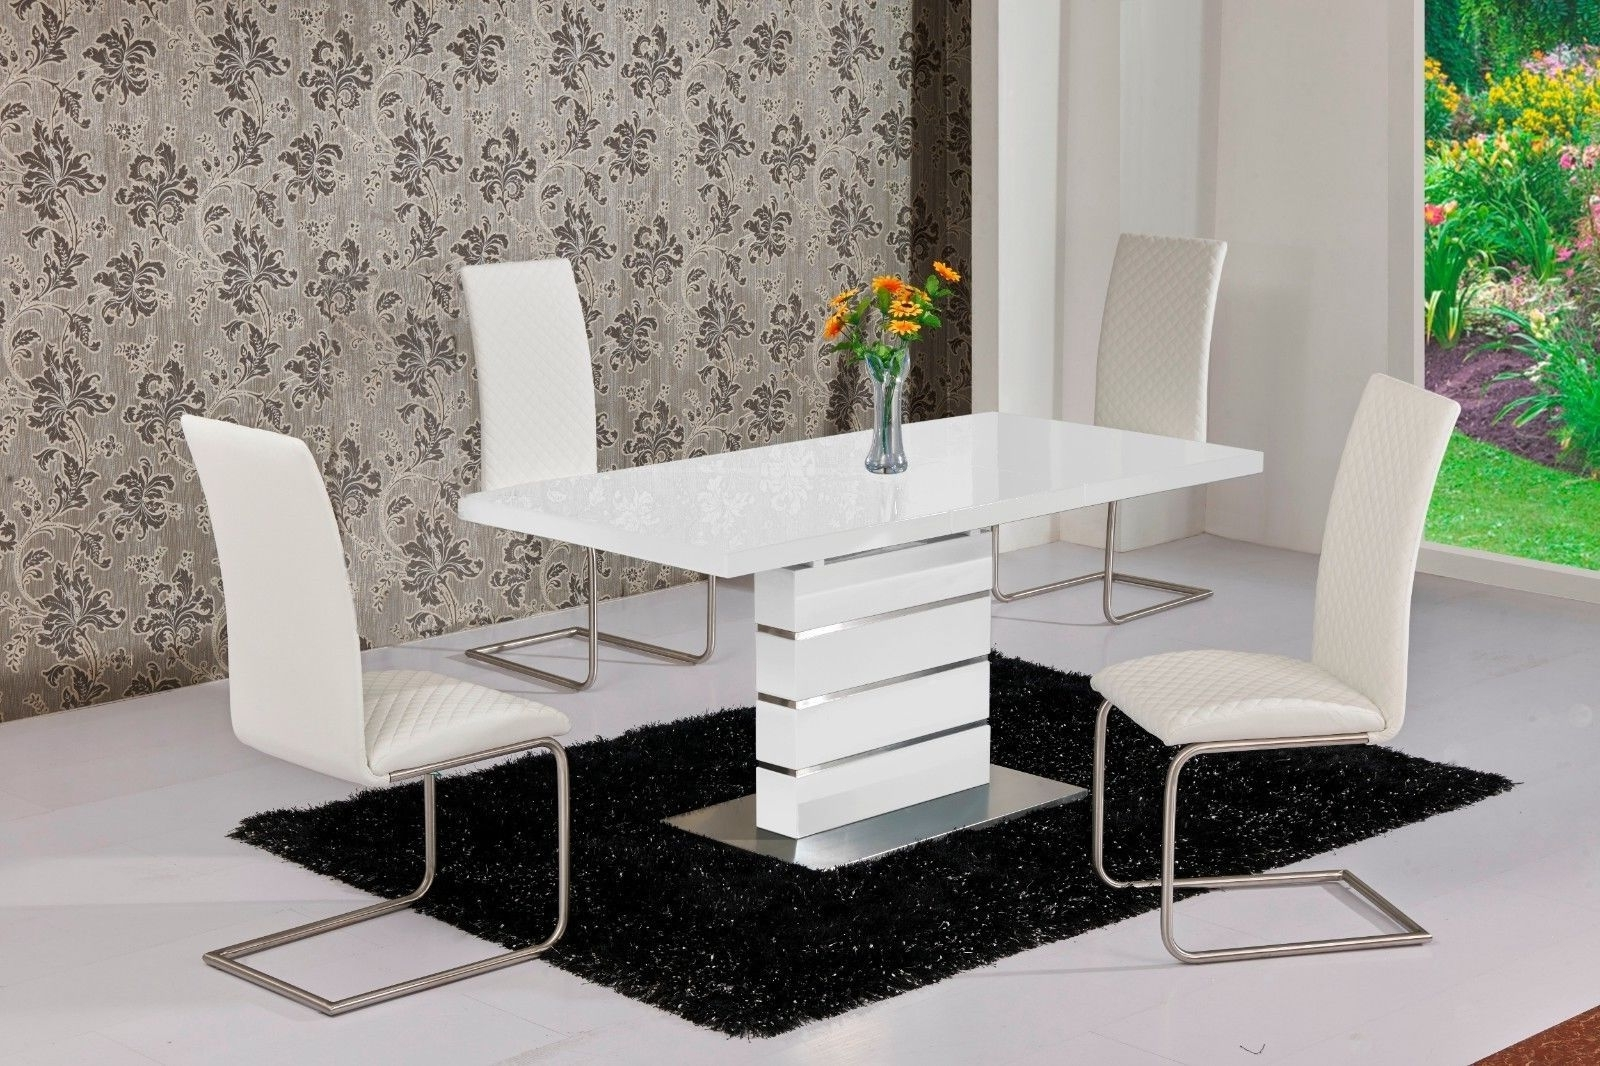 Mace High Gloss Extending 120 160 Dining Table & Chair Set – White In Most Recent High Gloss White Dining Tables And Chairs (View 3 of 25)